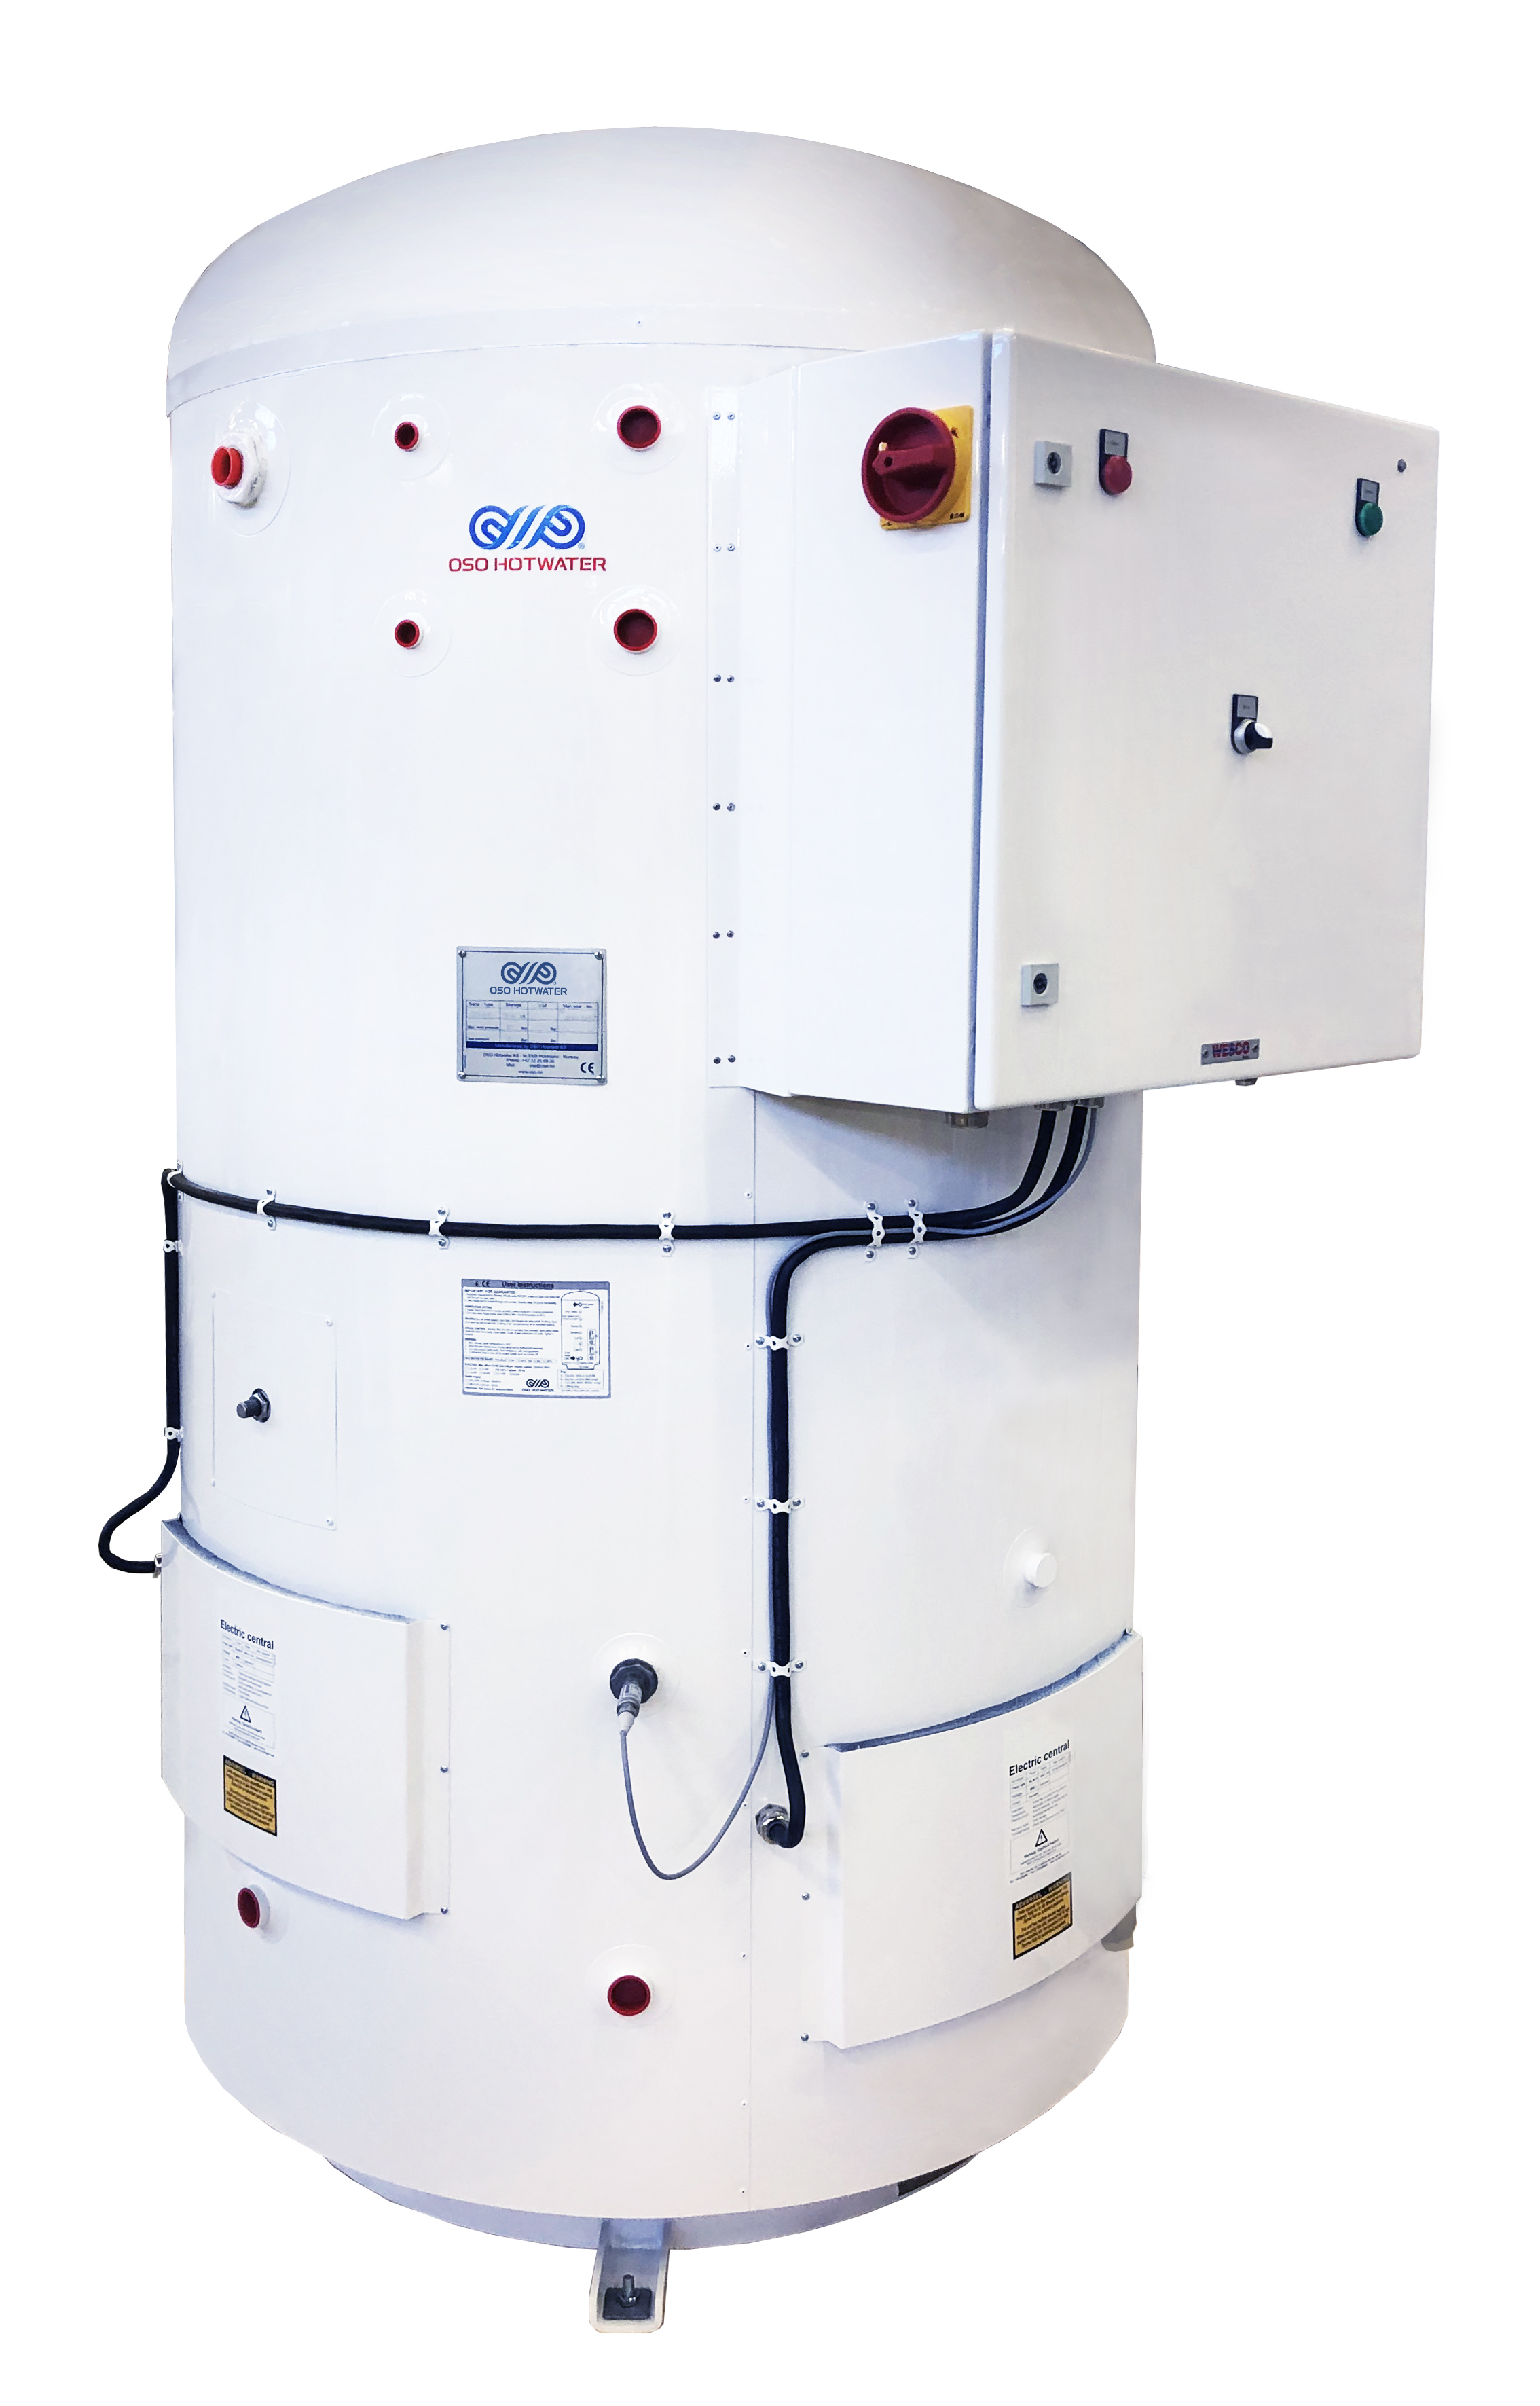 Oso Hotwater Export AS Photo